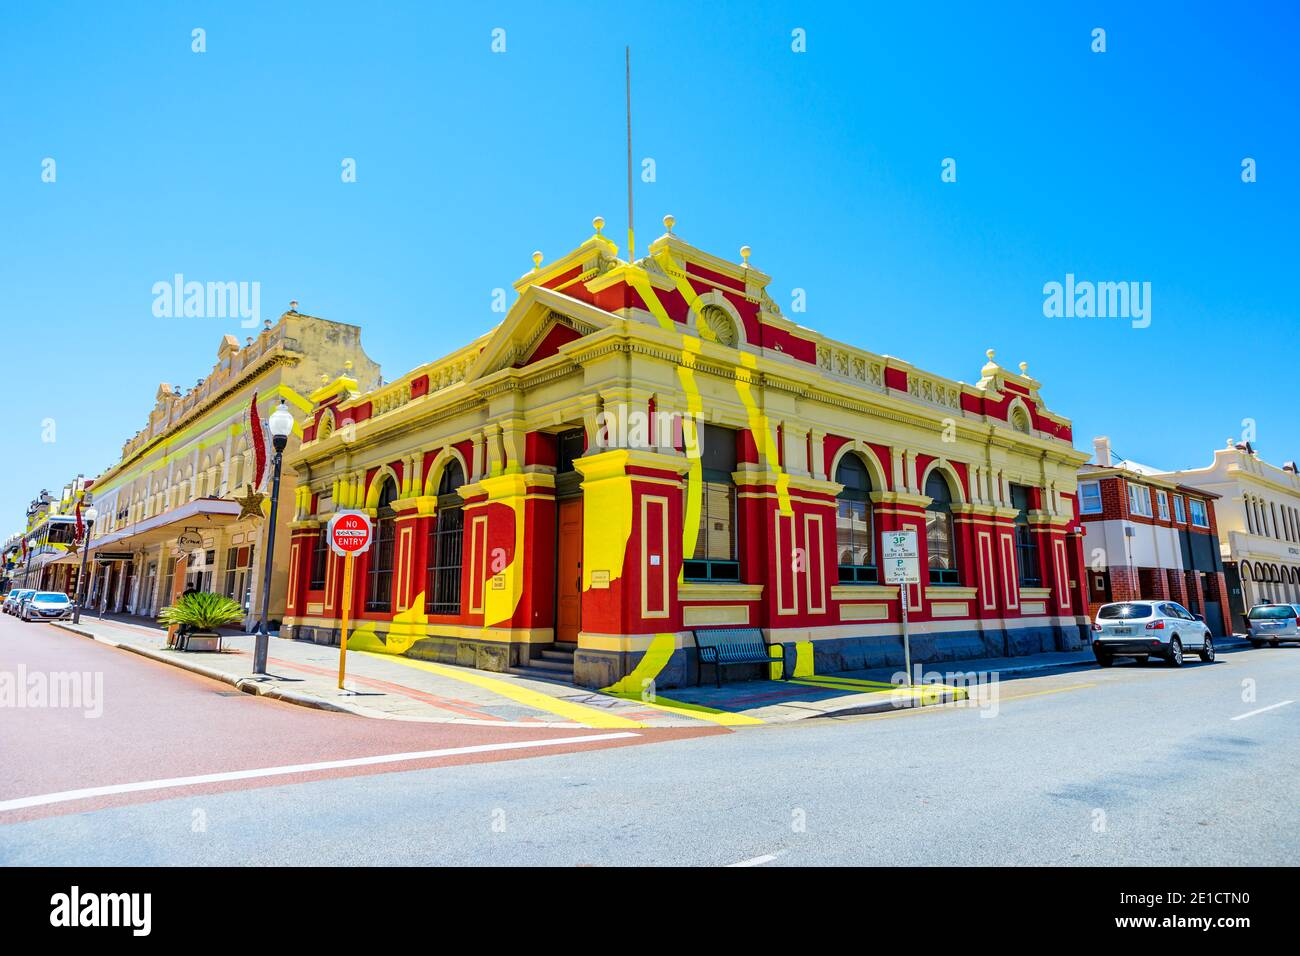 Fremantle, Western Australia - Jan 2, 2018: historical building situated on corner of High and Adelaide Streets and is part of optical illusion Stock Photo